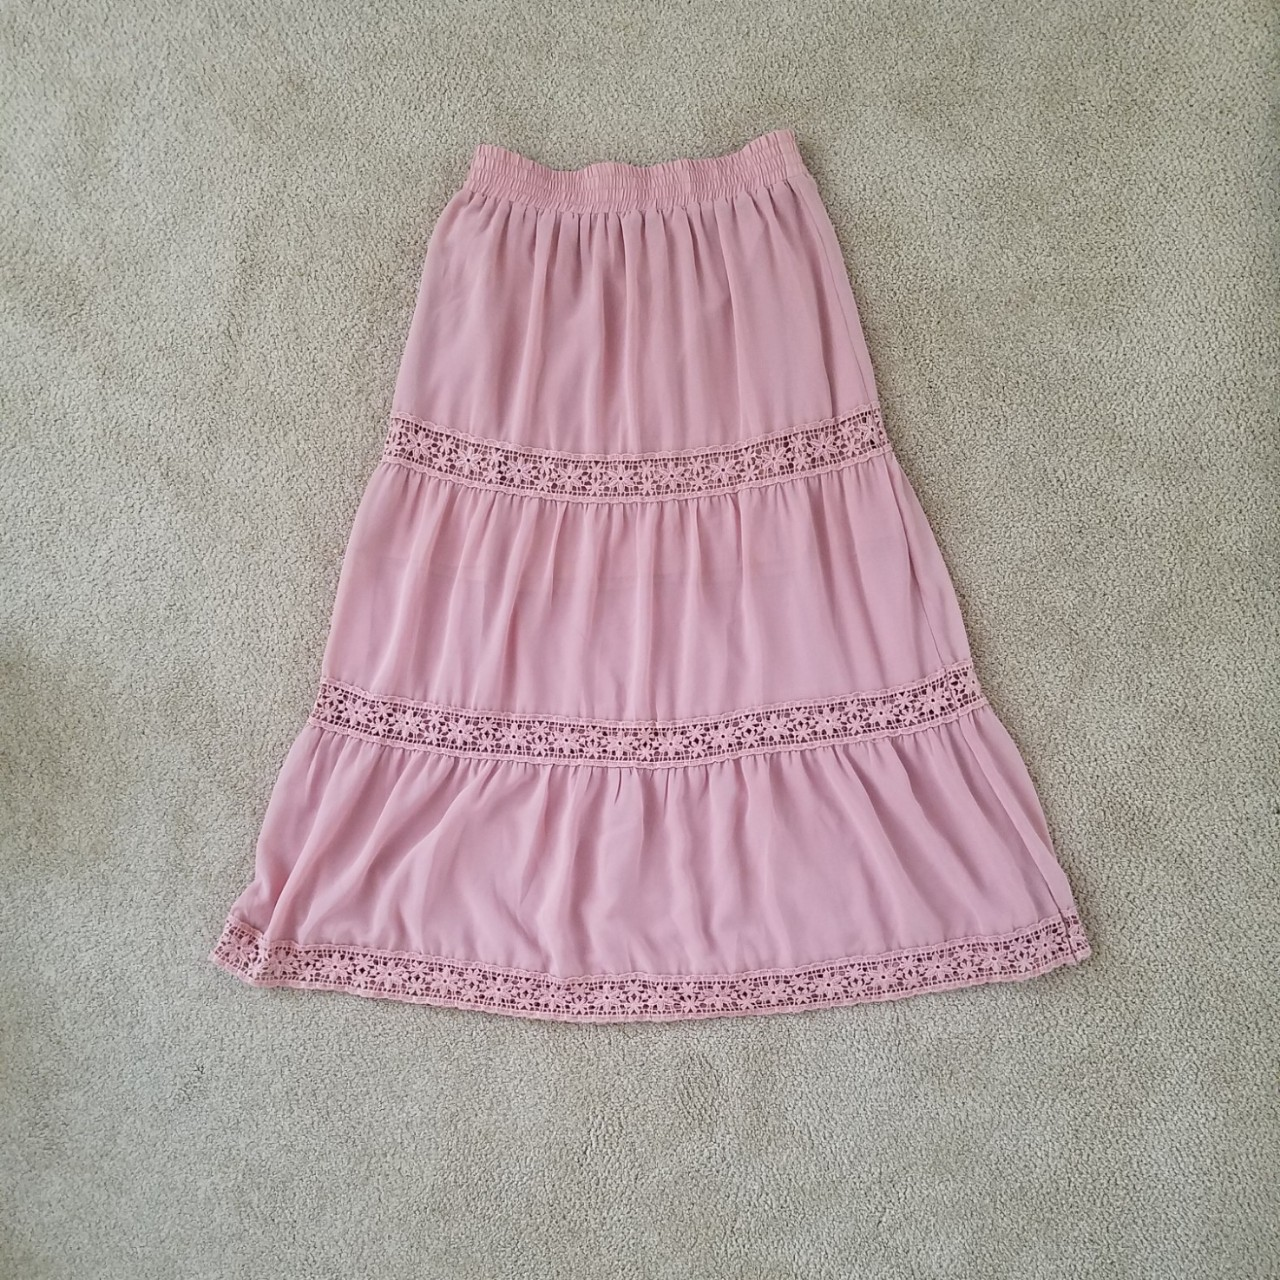 Product Image 1 - Excellent condition, pink boho crochet